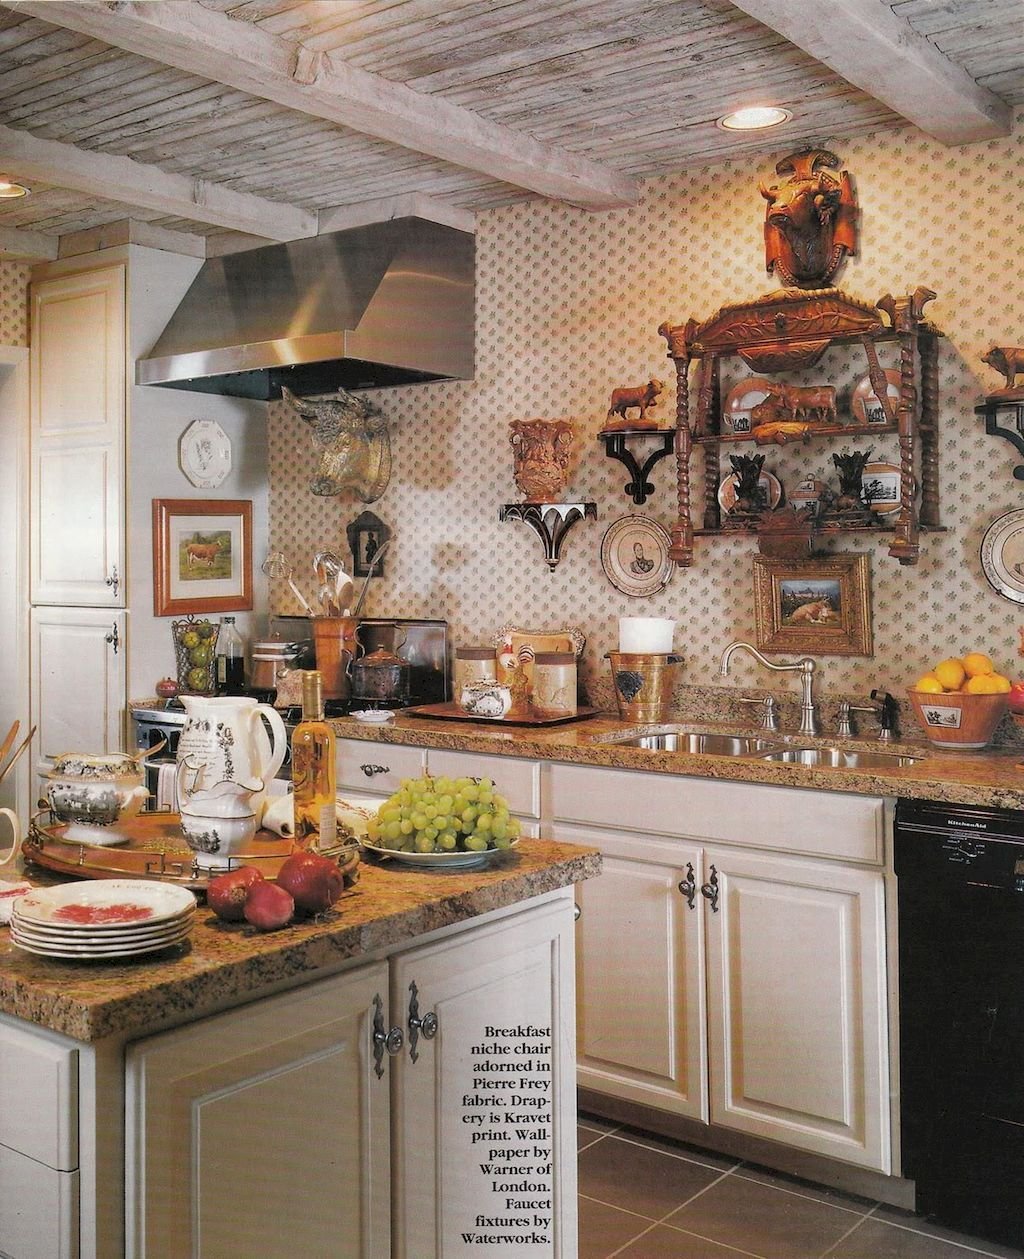 20 Charming Cottage Style Kitchen Decors: 80 French Country Kitchen Decorating Ideas